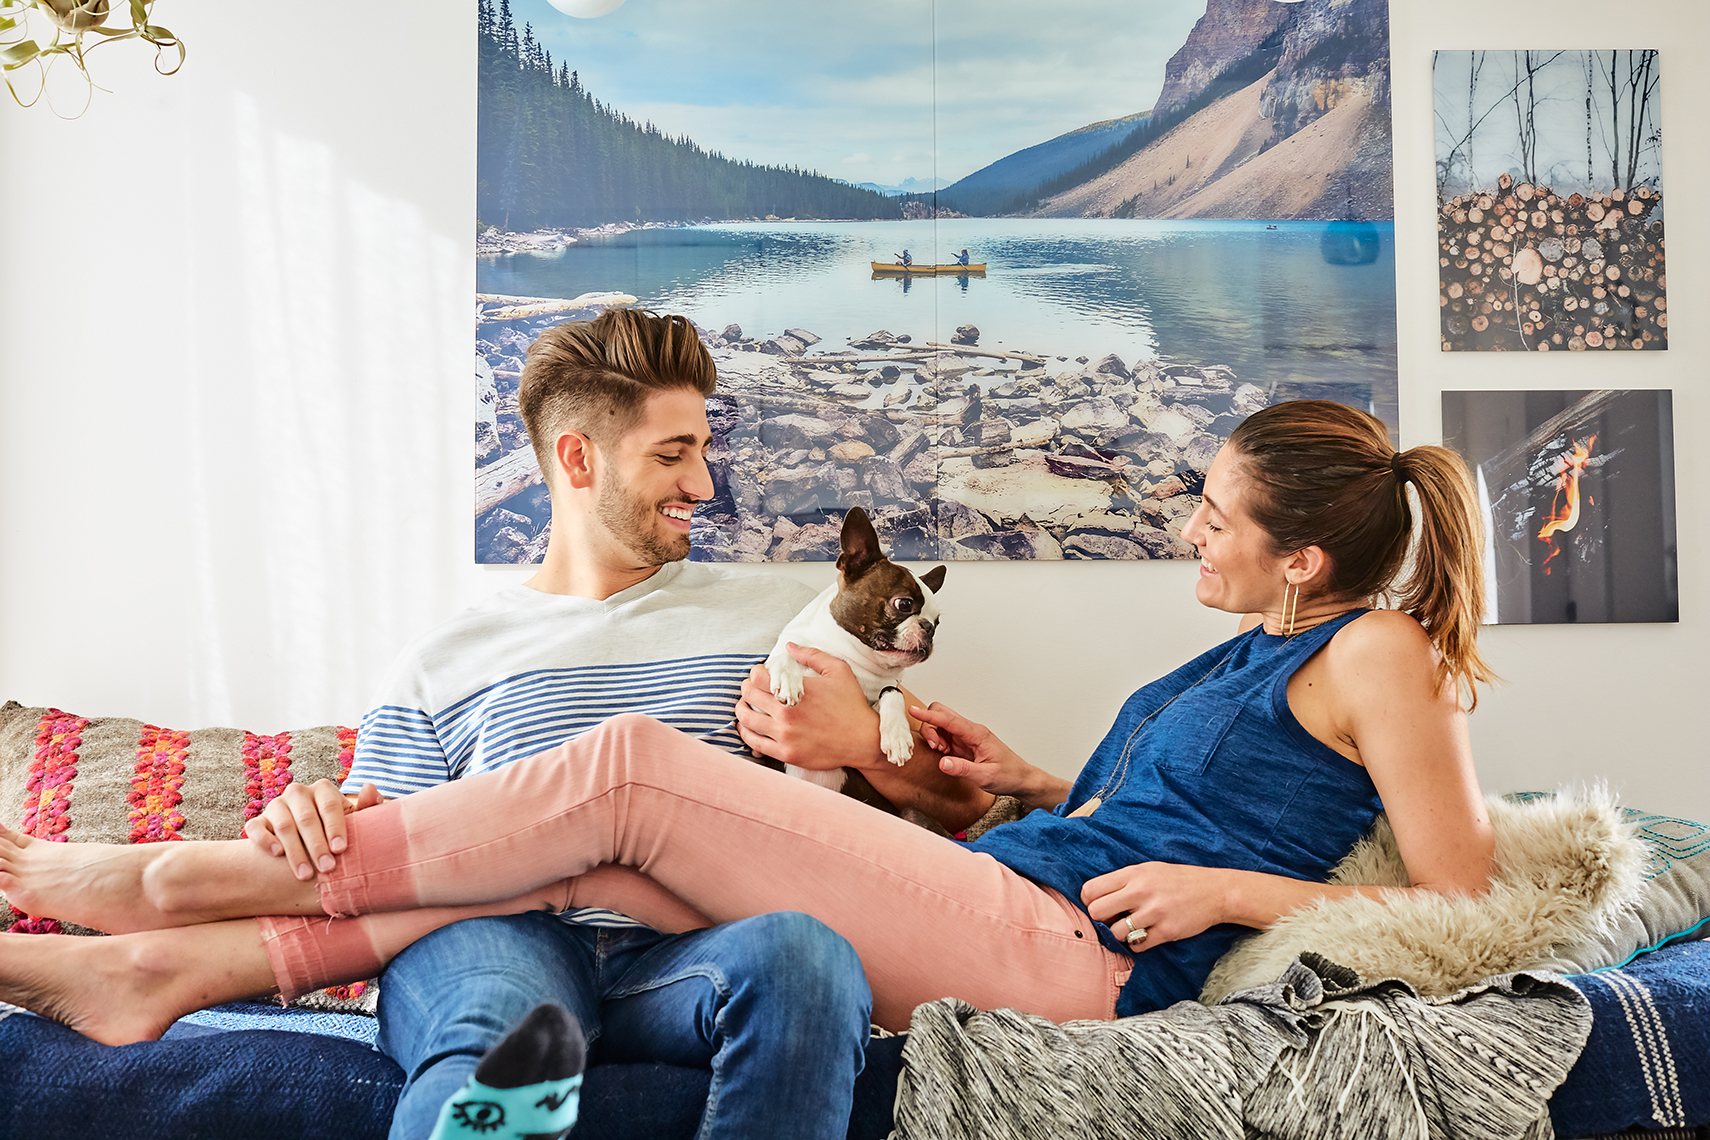 A couple hangs out on a couch in this lifestyle image by Leah Verwey